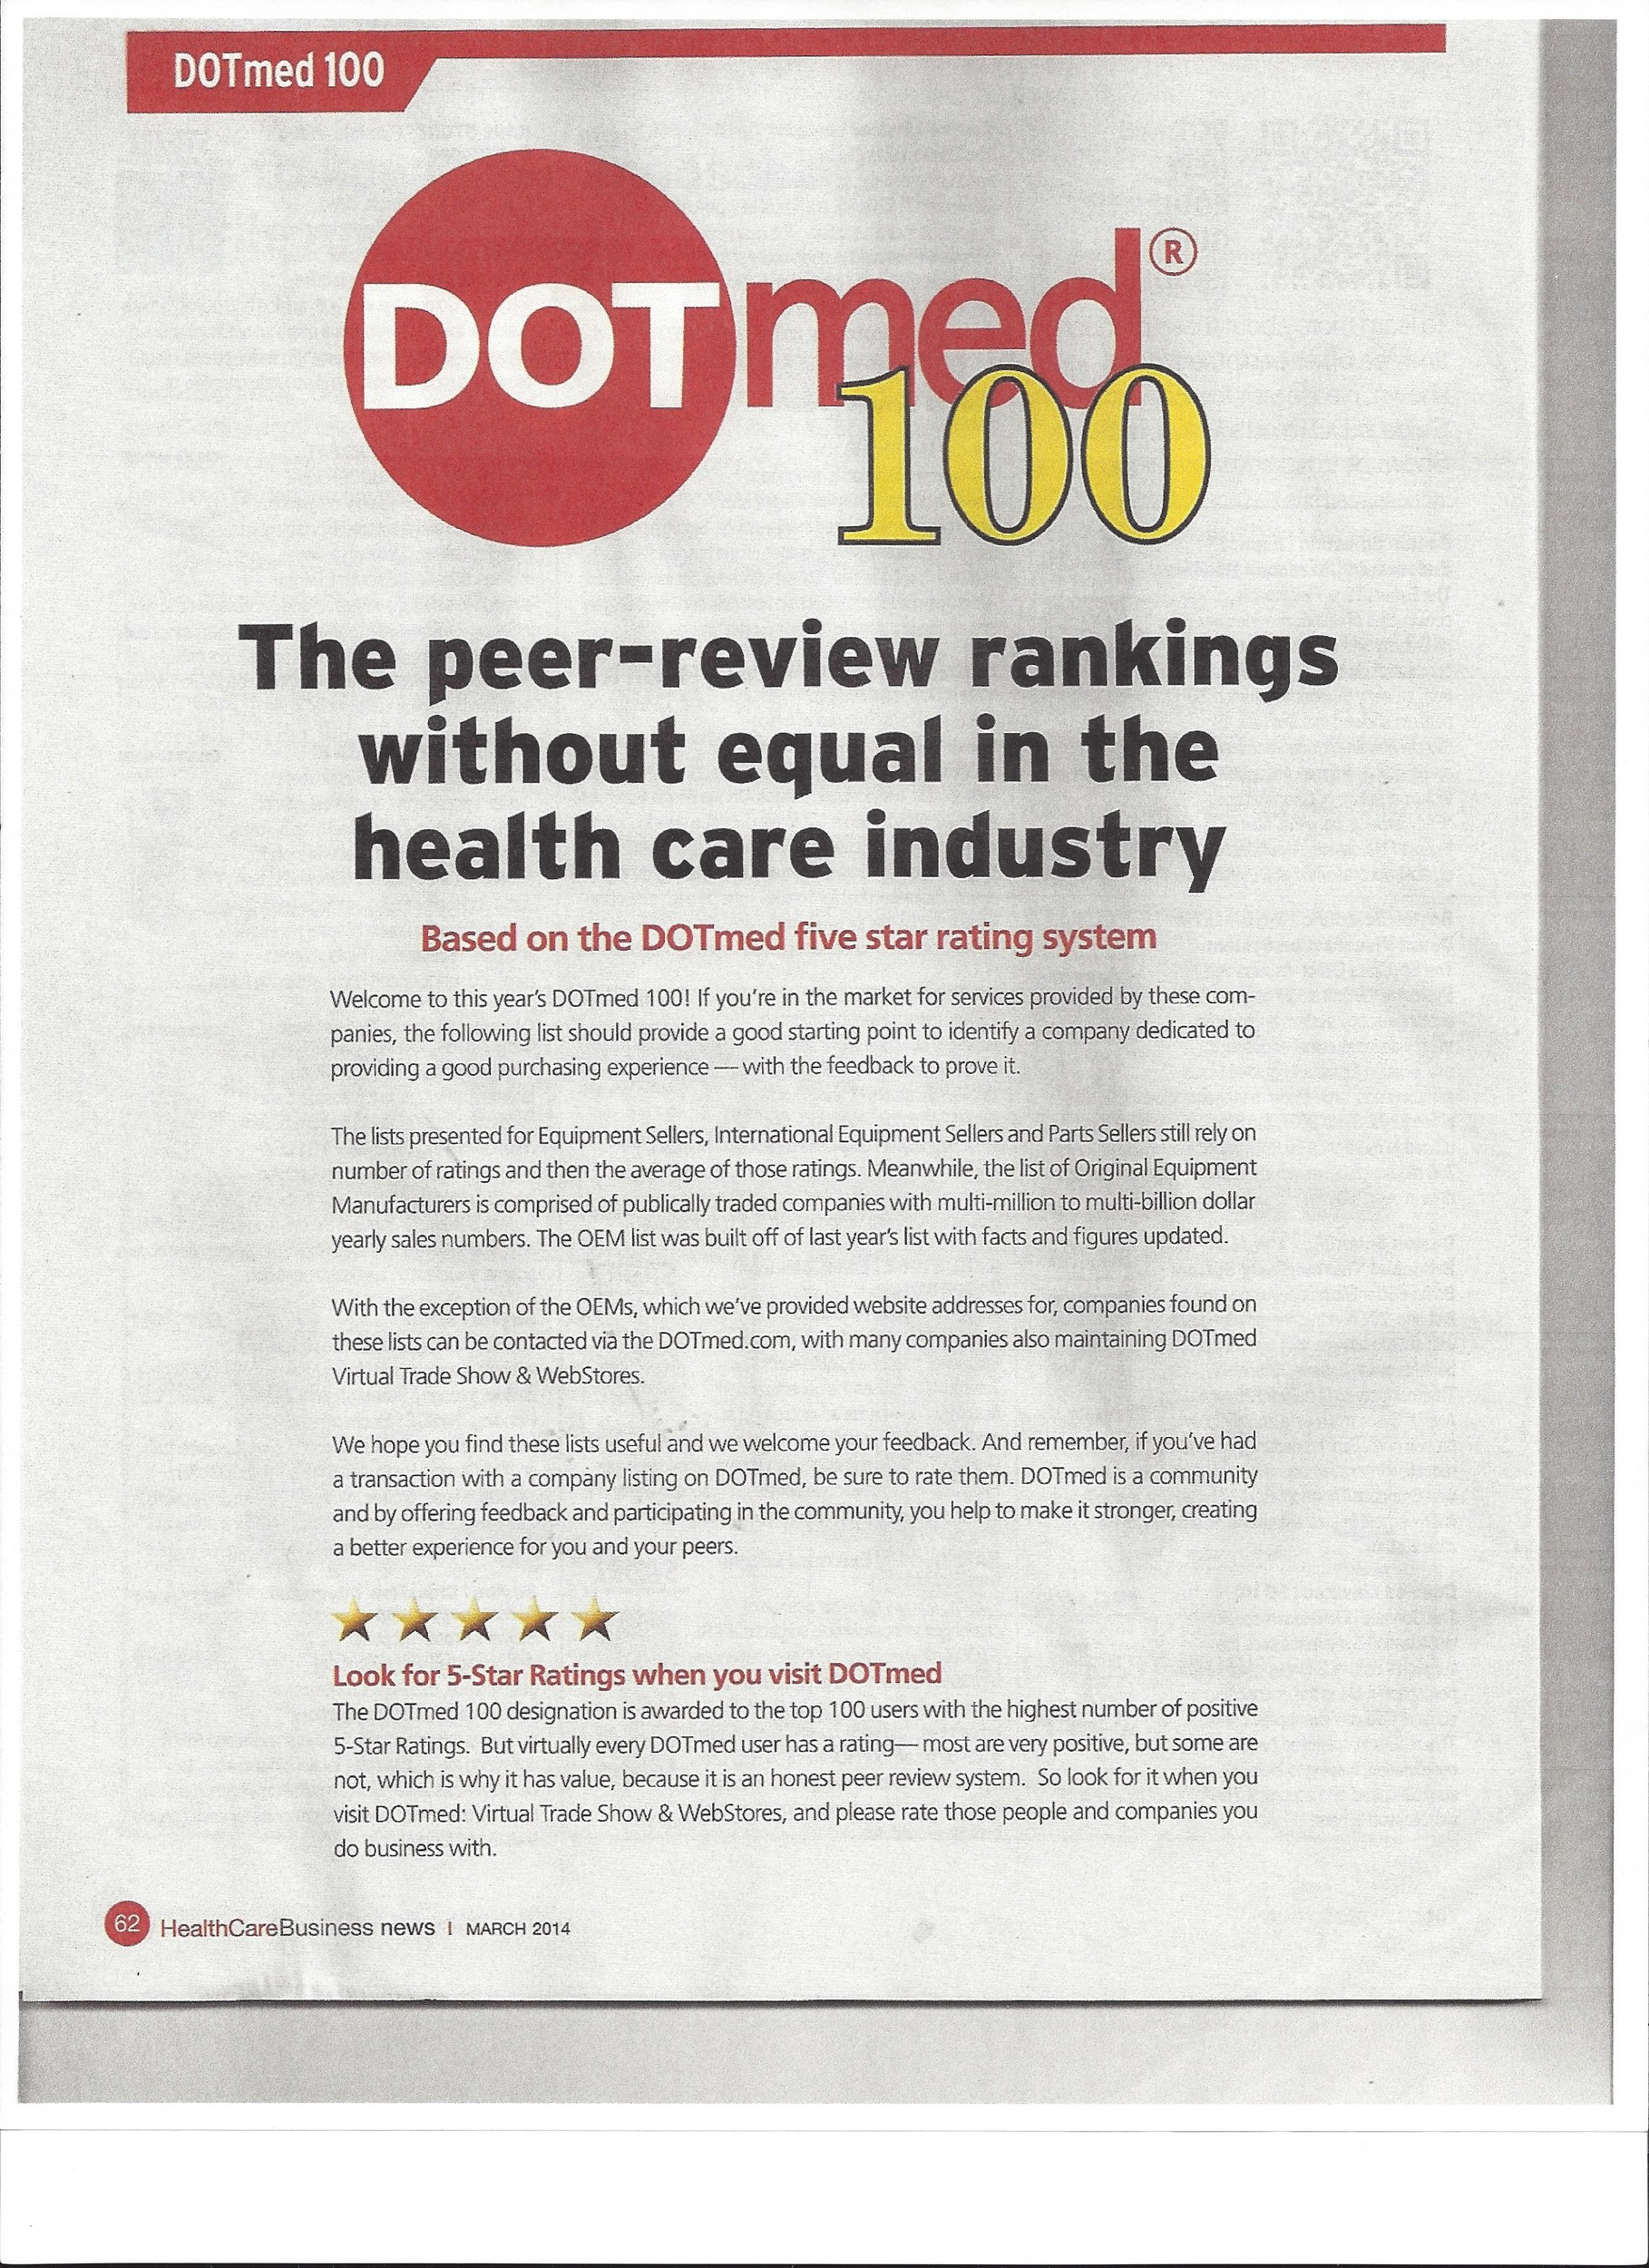 Fall River Company named as Number One Medical Dealer in US